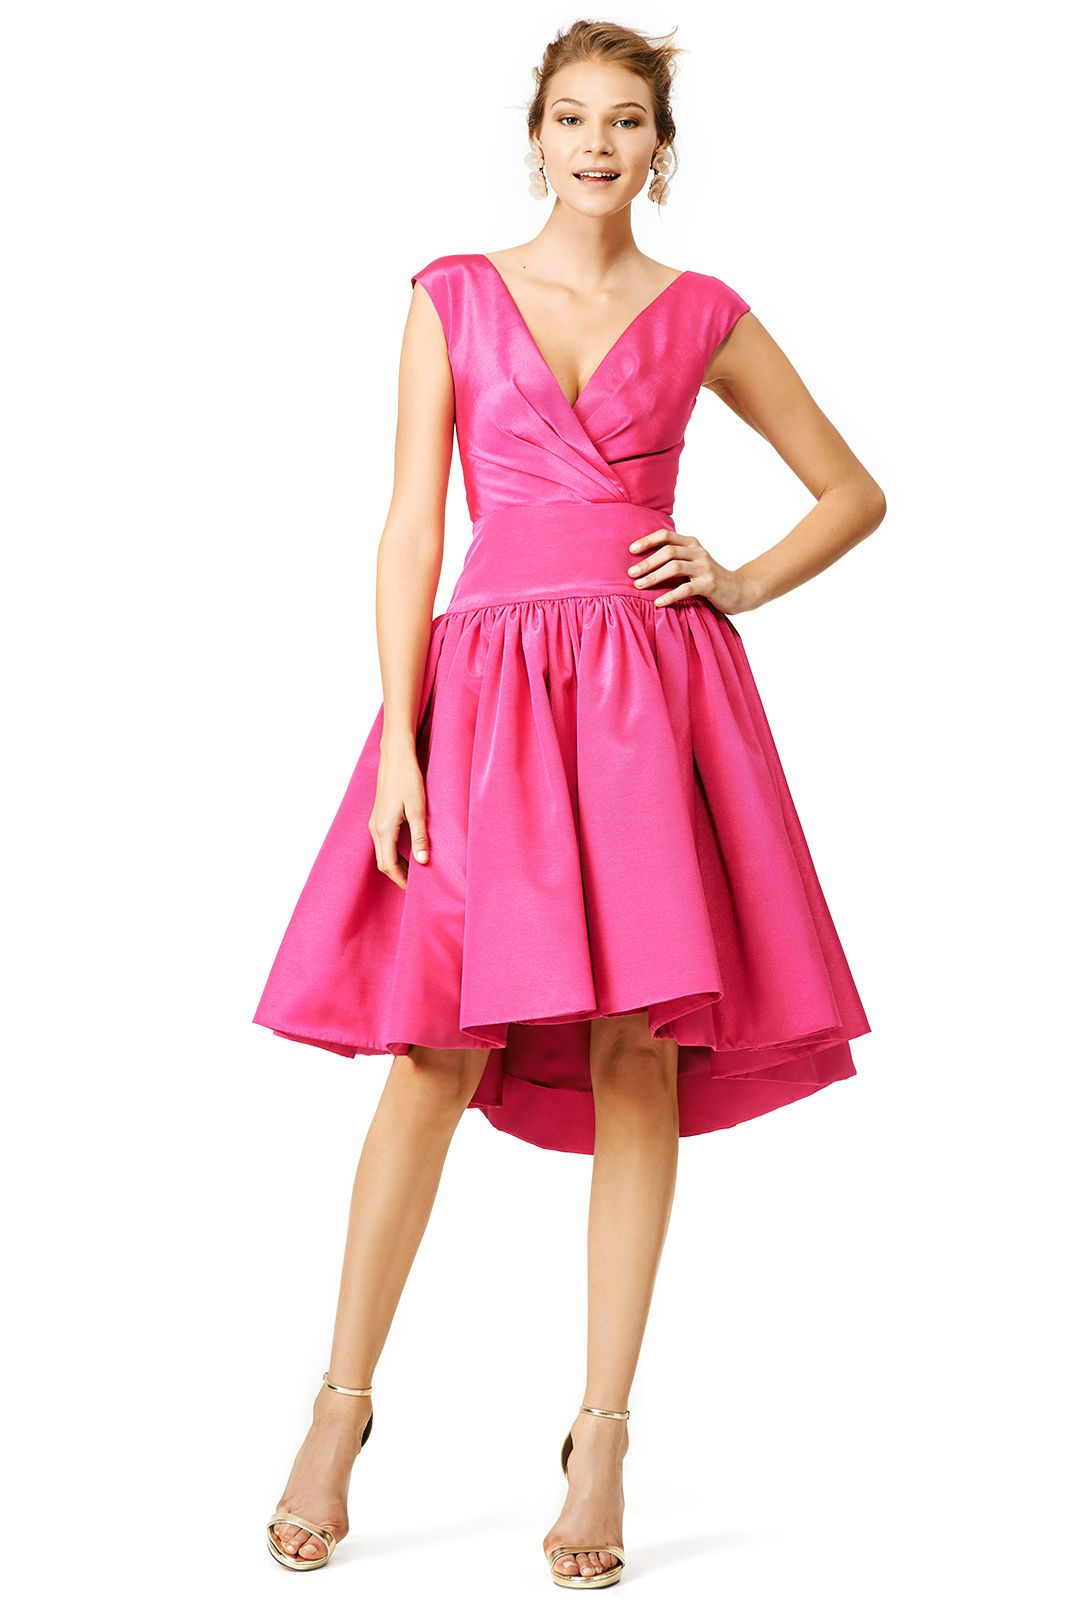 Pink party dress | Stuff to Buy | Pinterest | Cristiano, Pasarela y Rosa